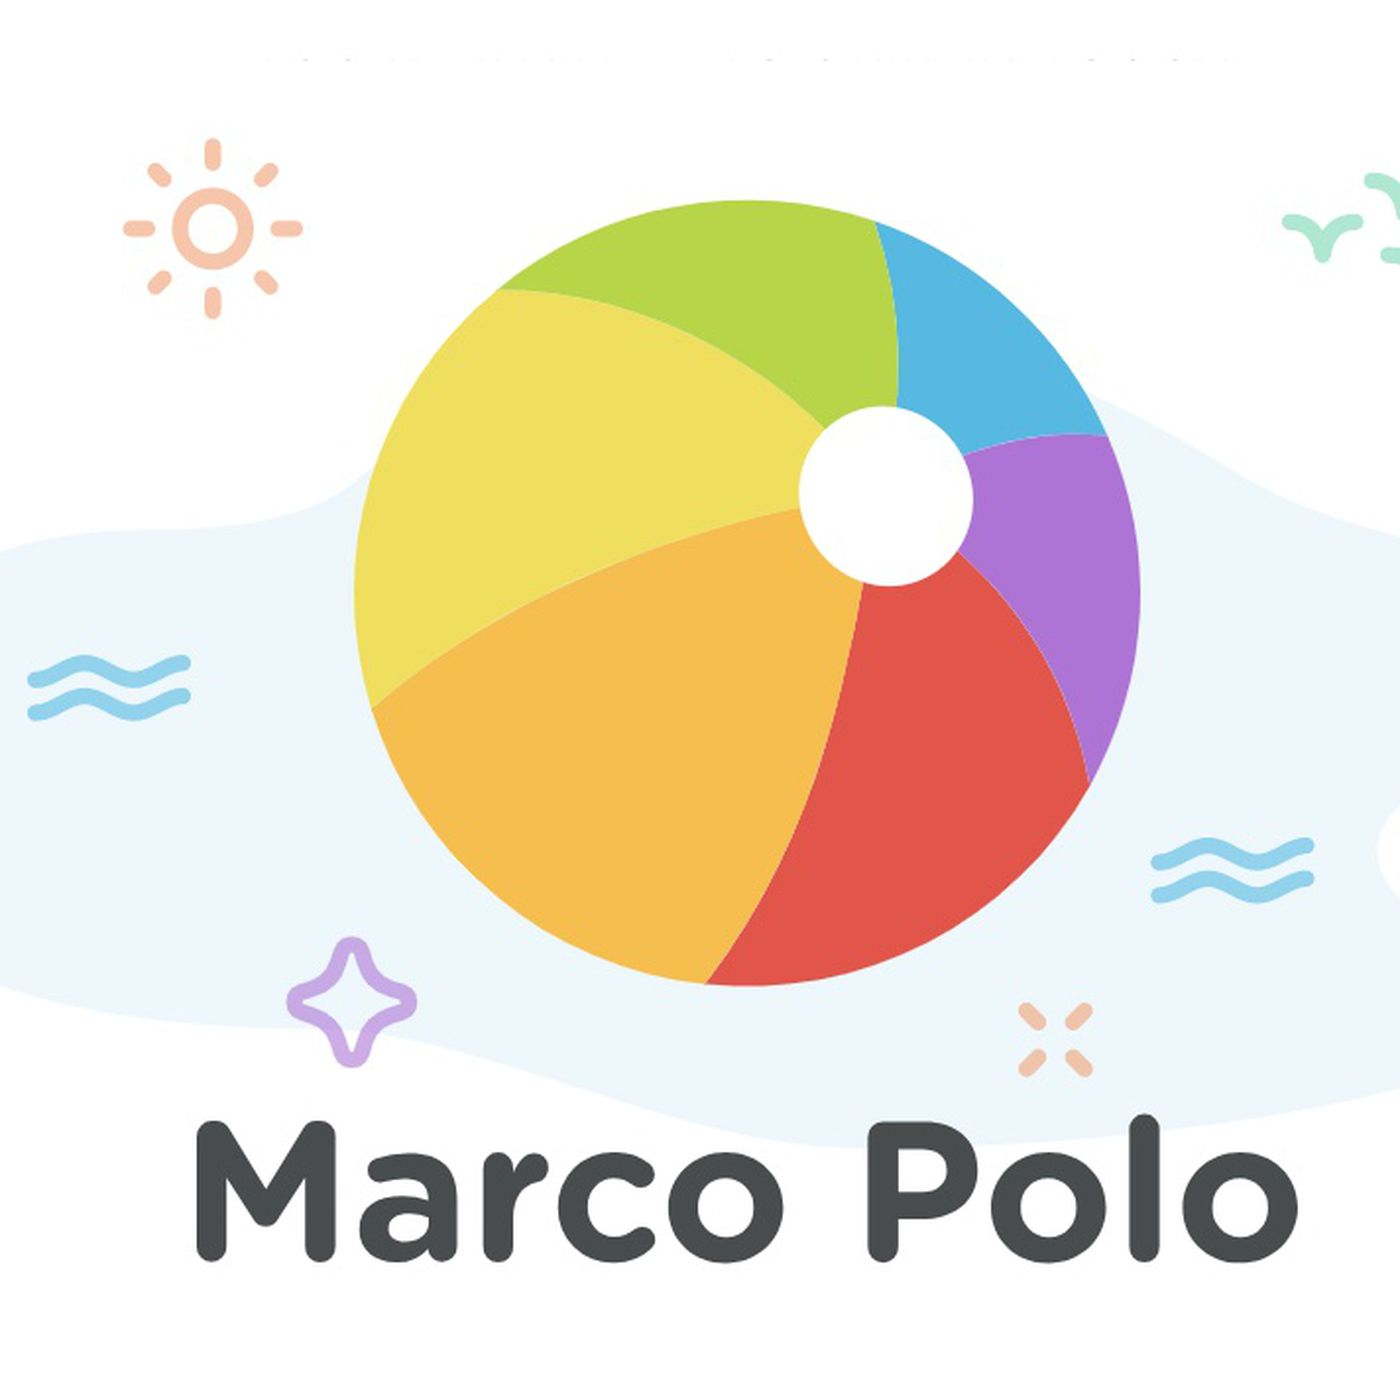 Marco Polo has been around for years, but it's blowing up amid the ...